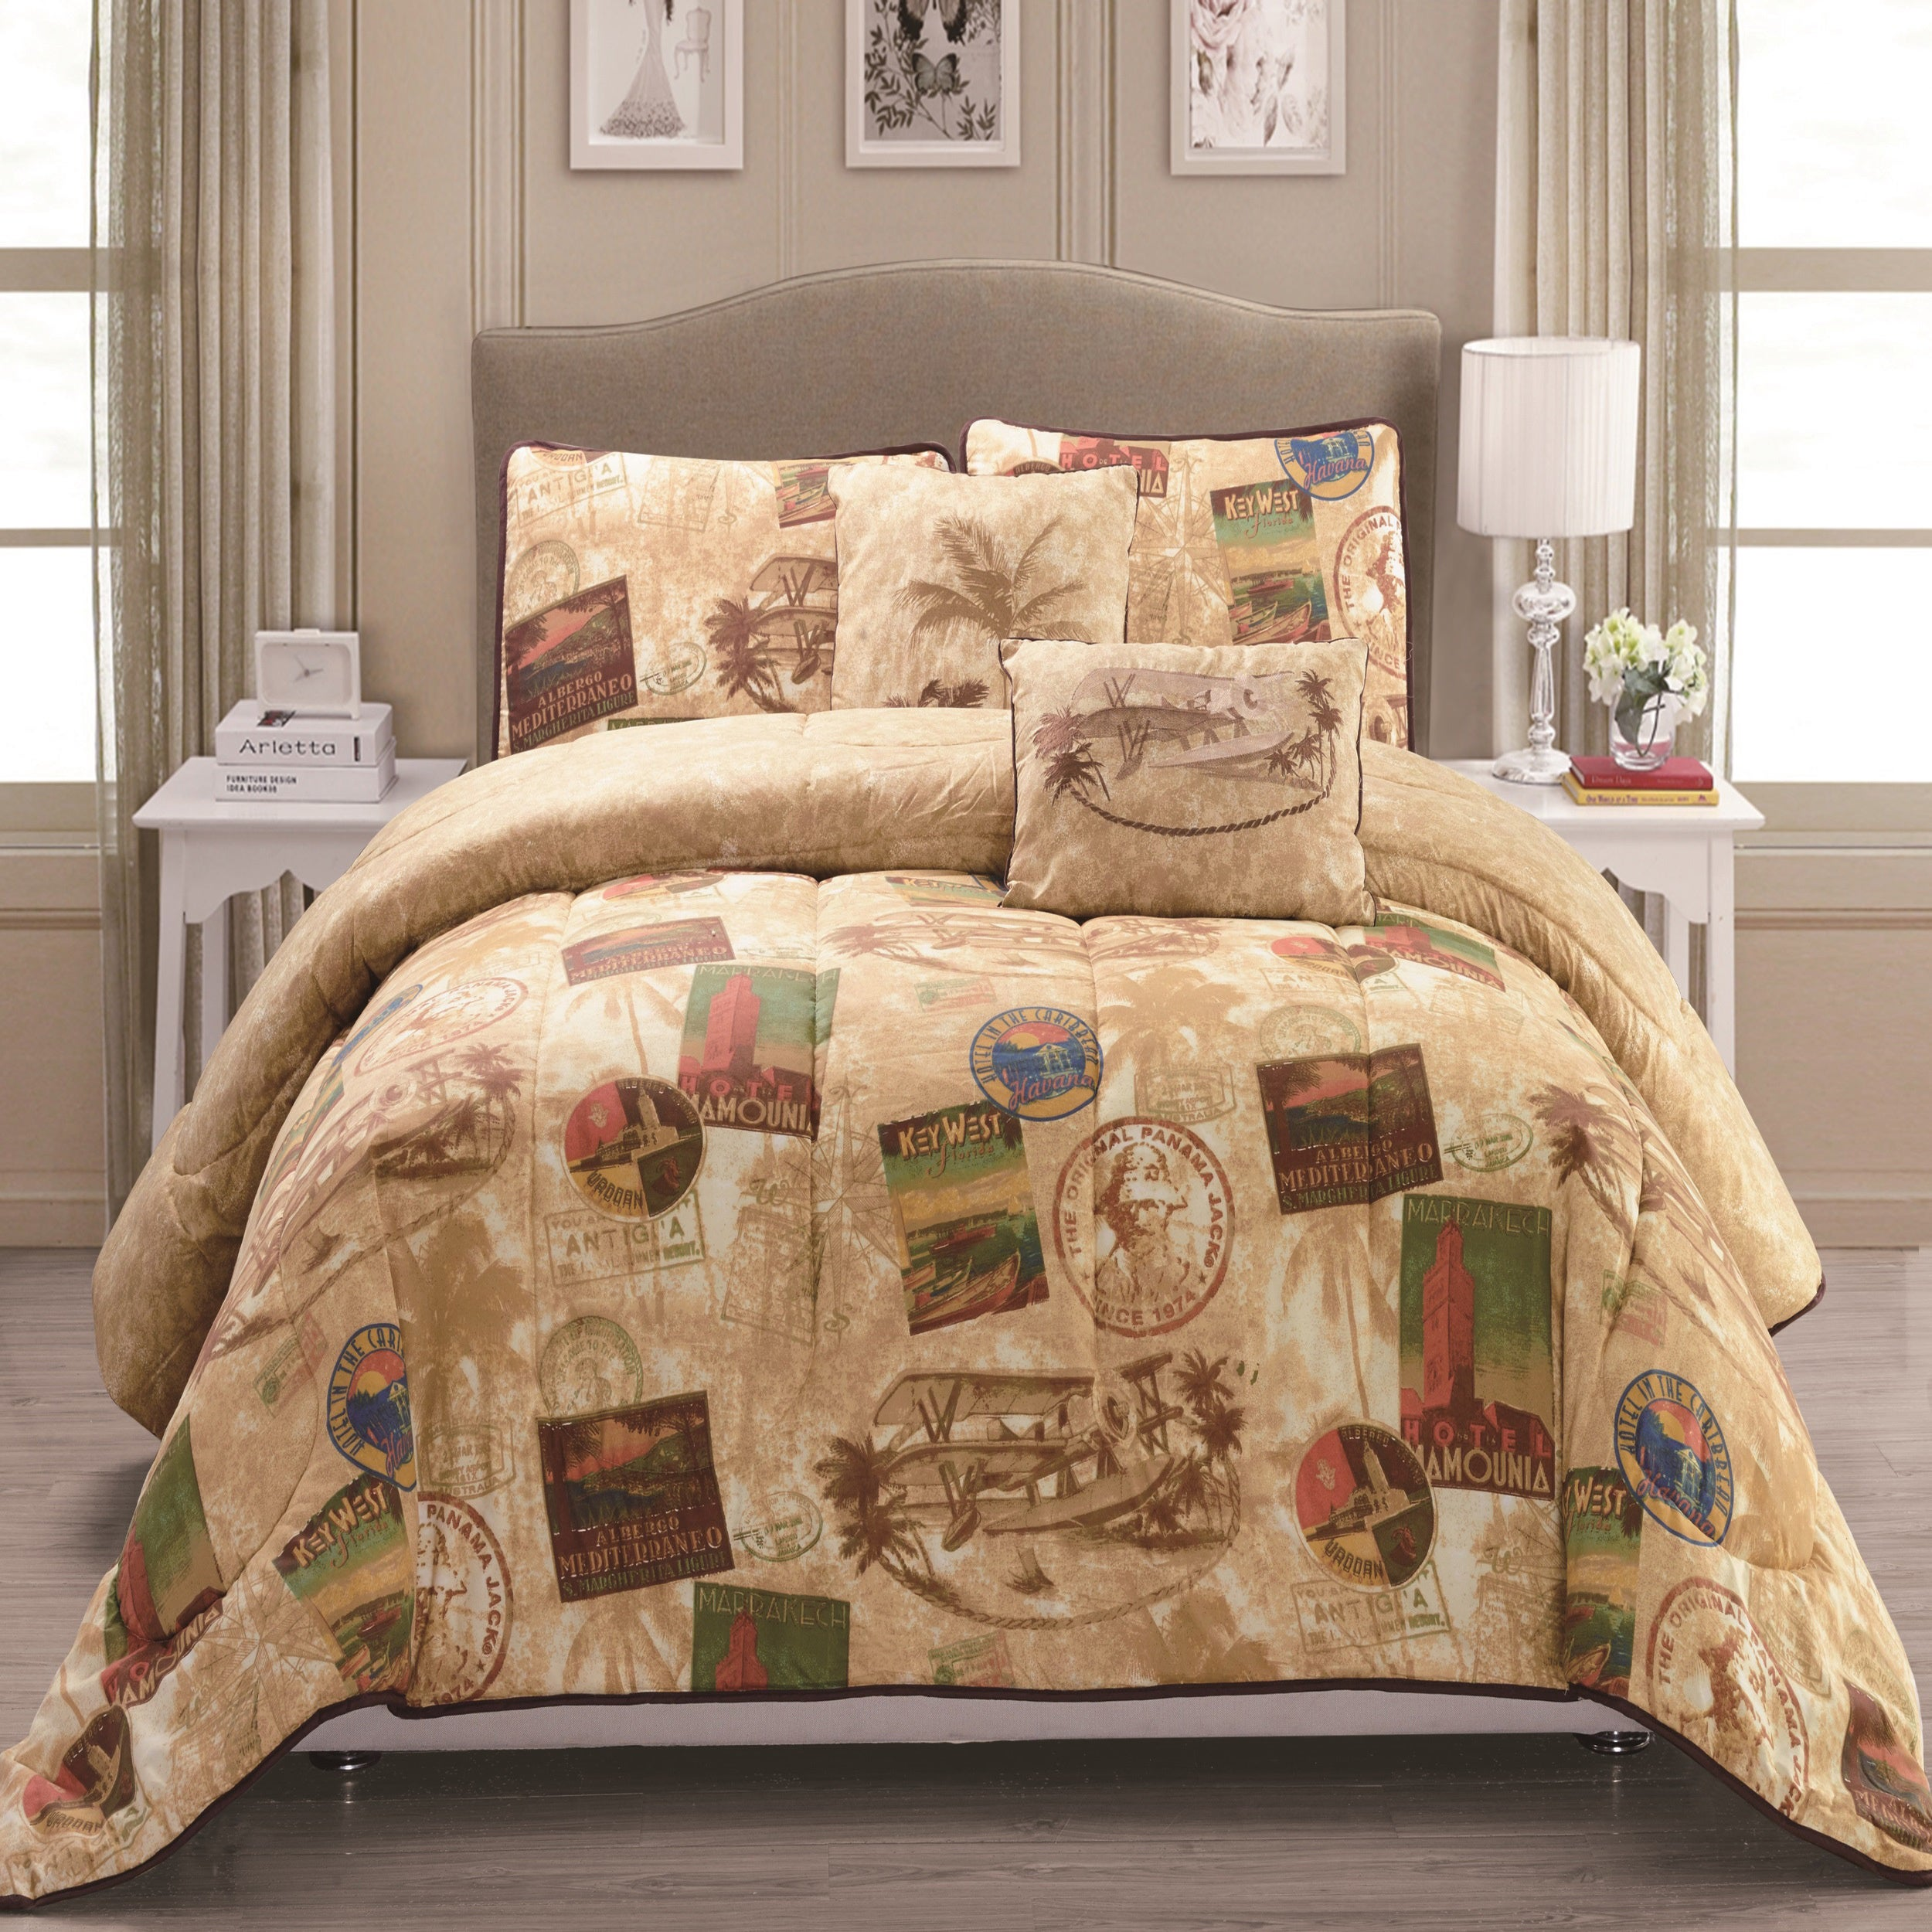 p flax rose ruffled bedding floral vintage bed set daybed